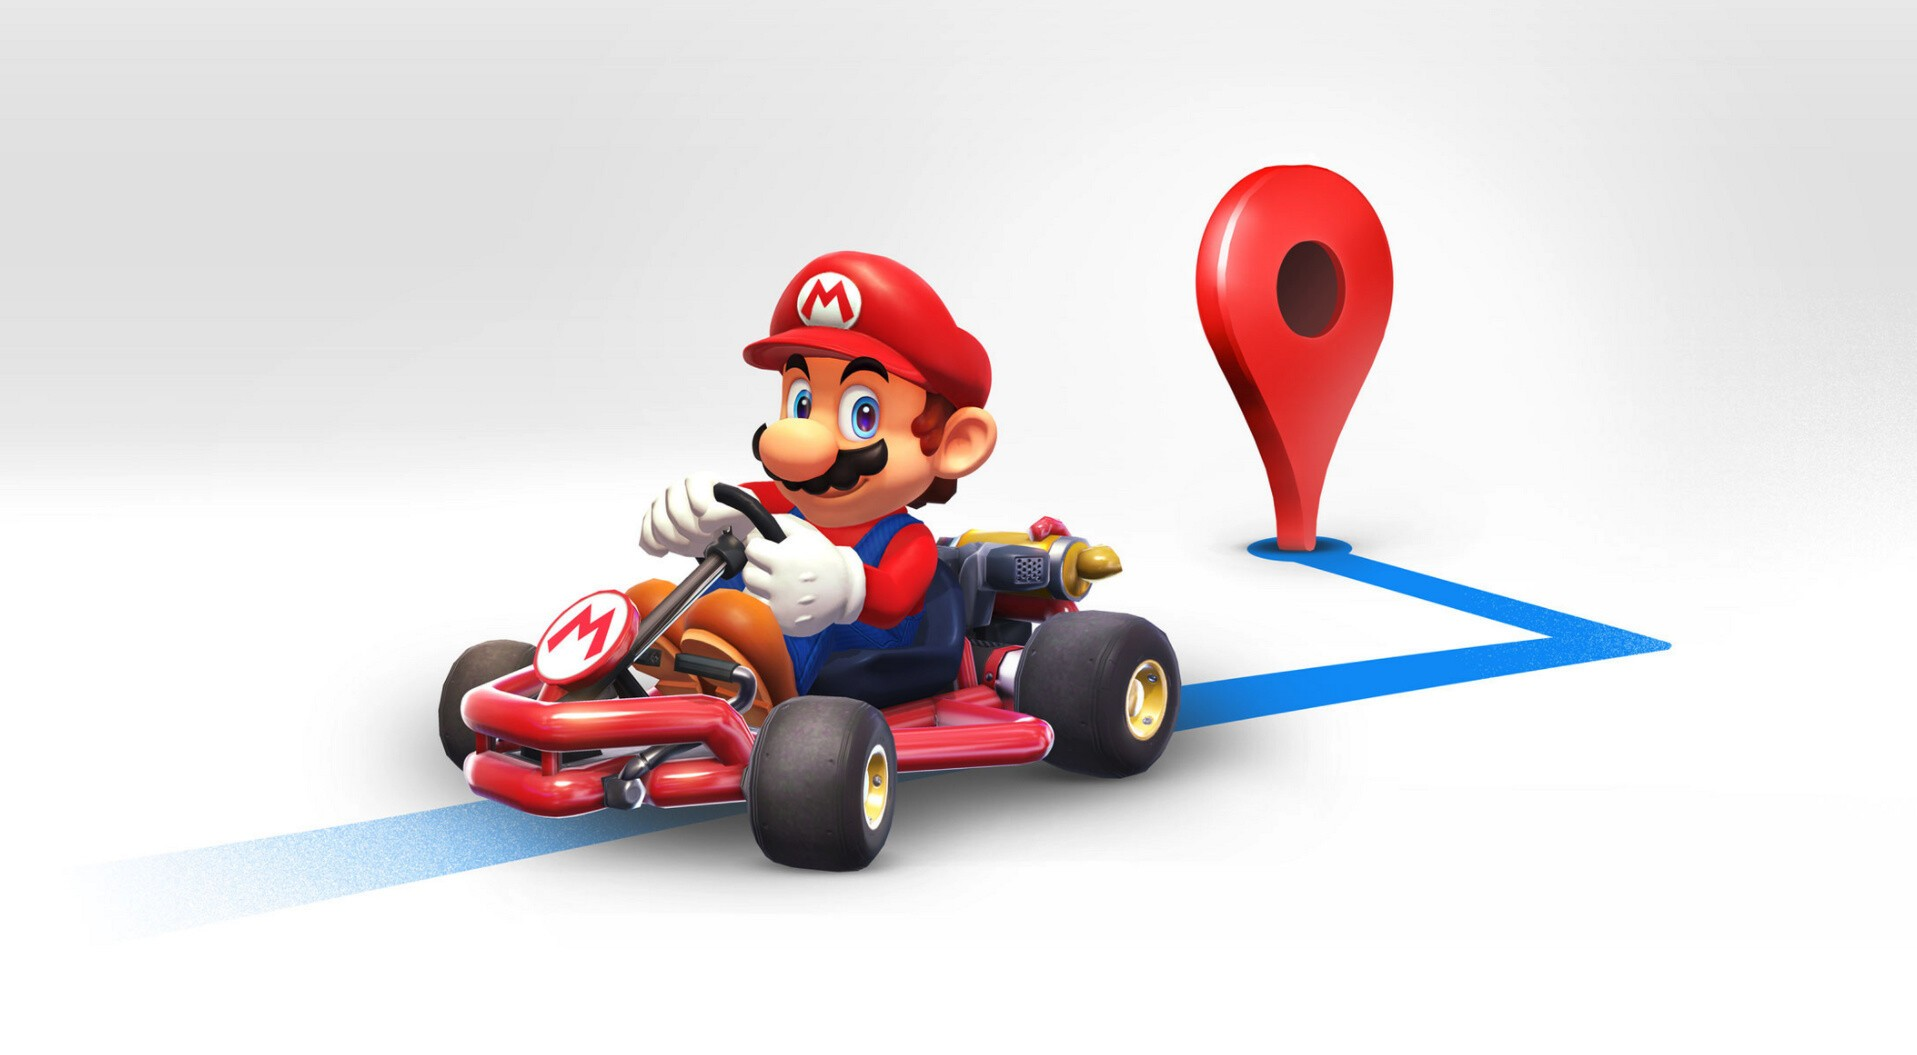 Mario can guide you around town in Google Maps as part of the Mario Day celebrations